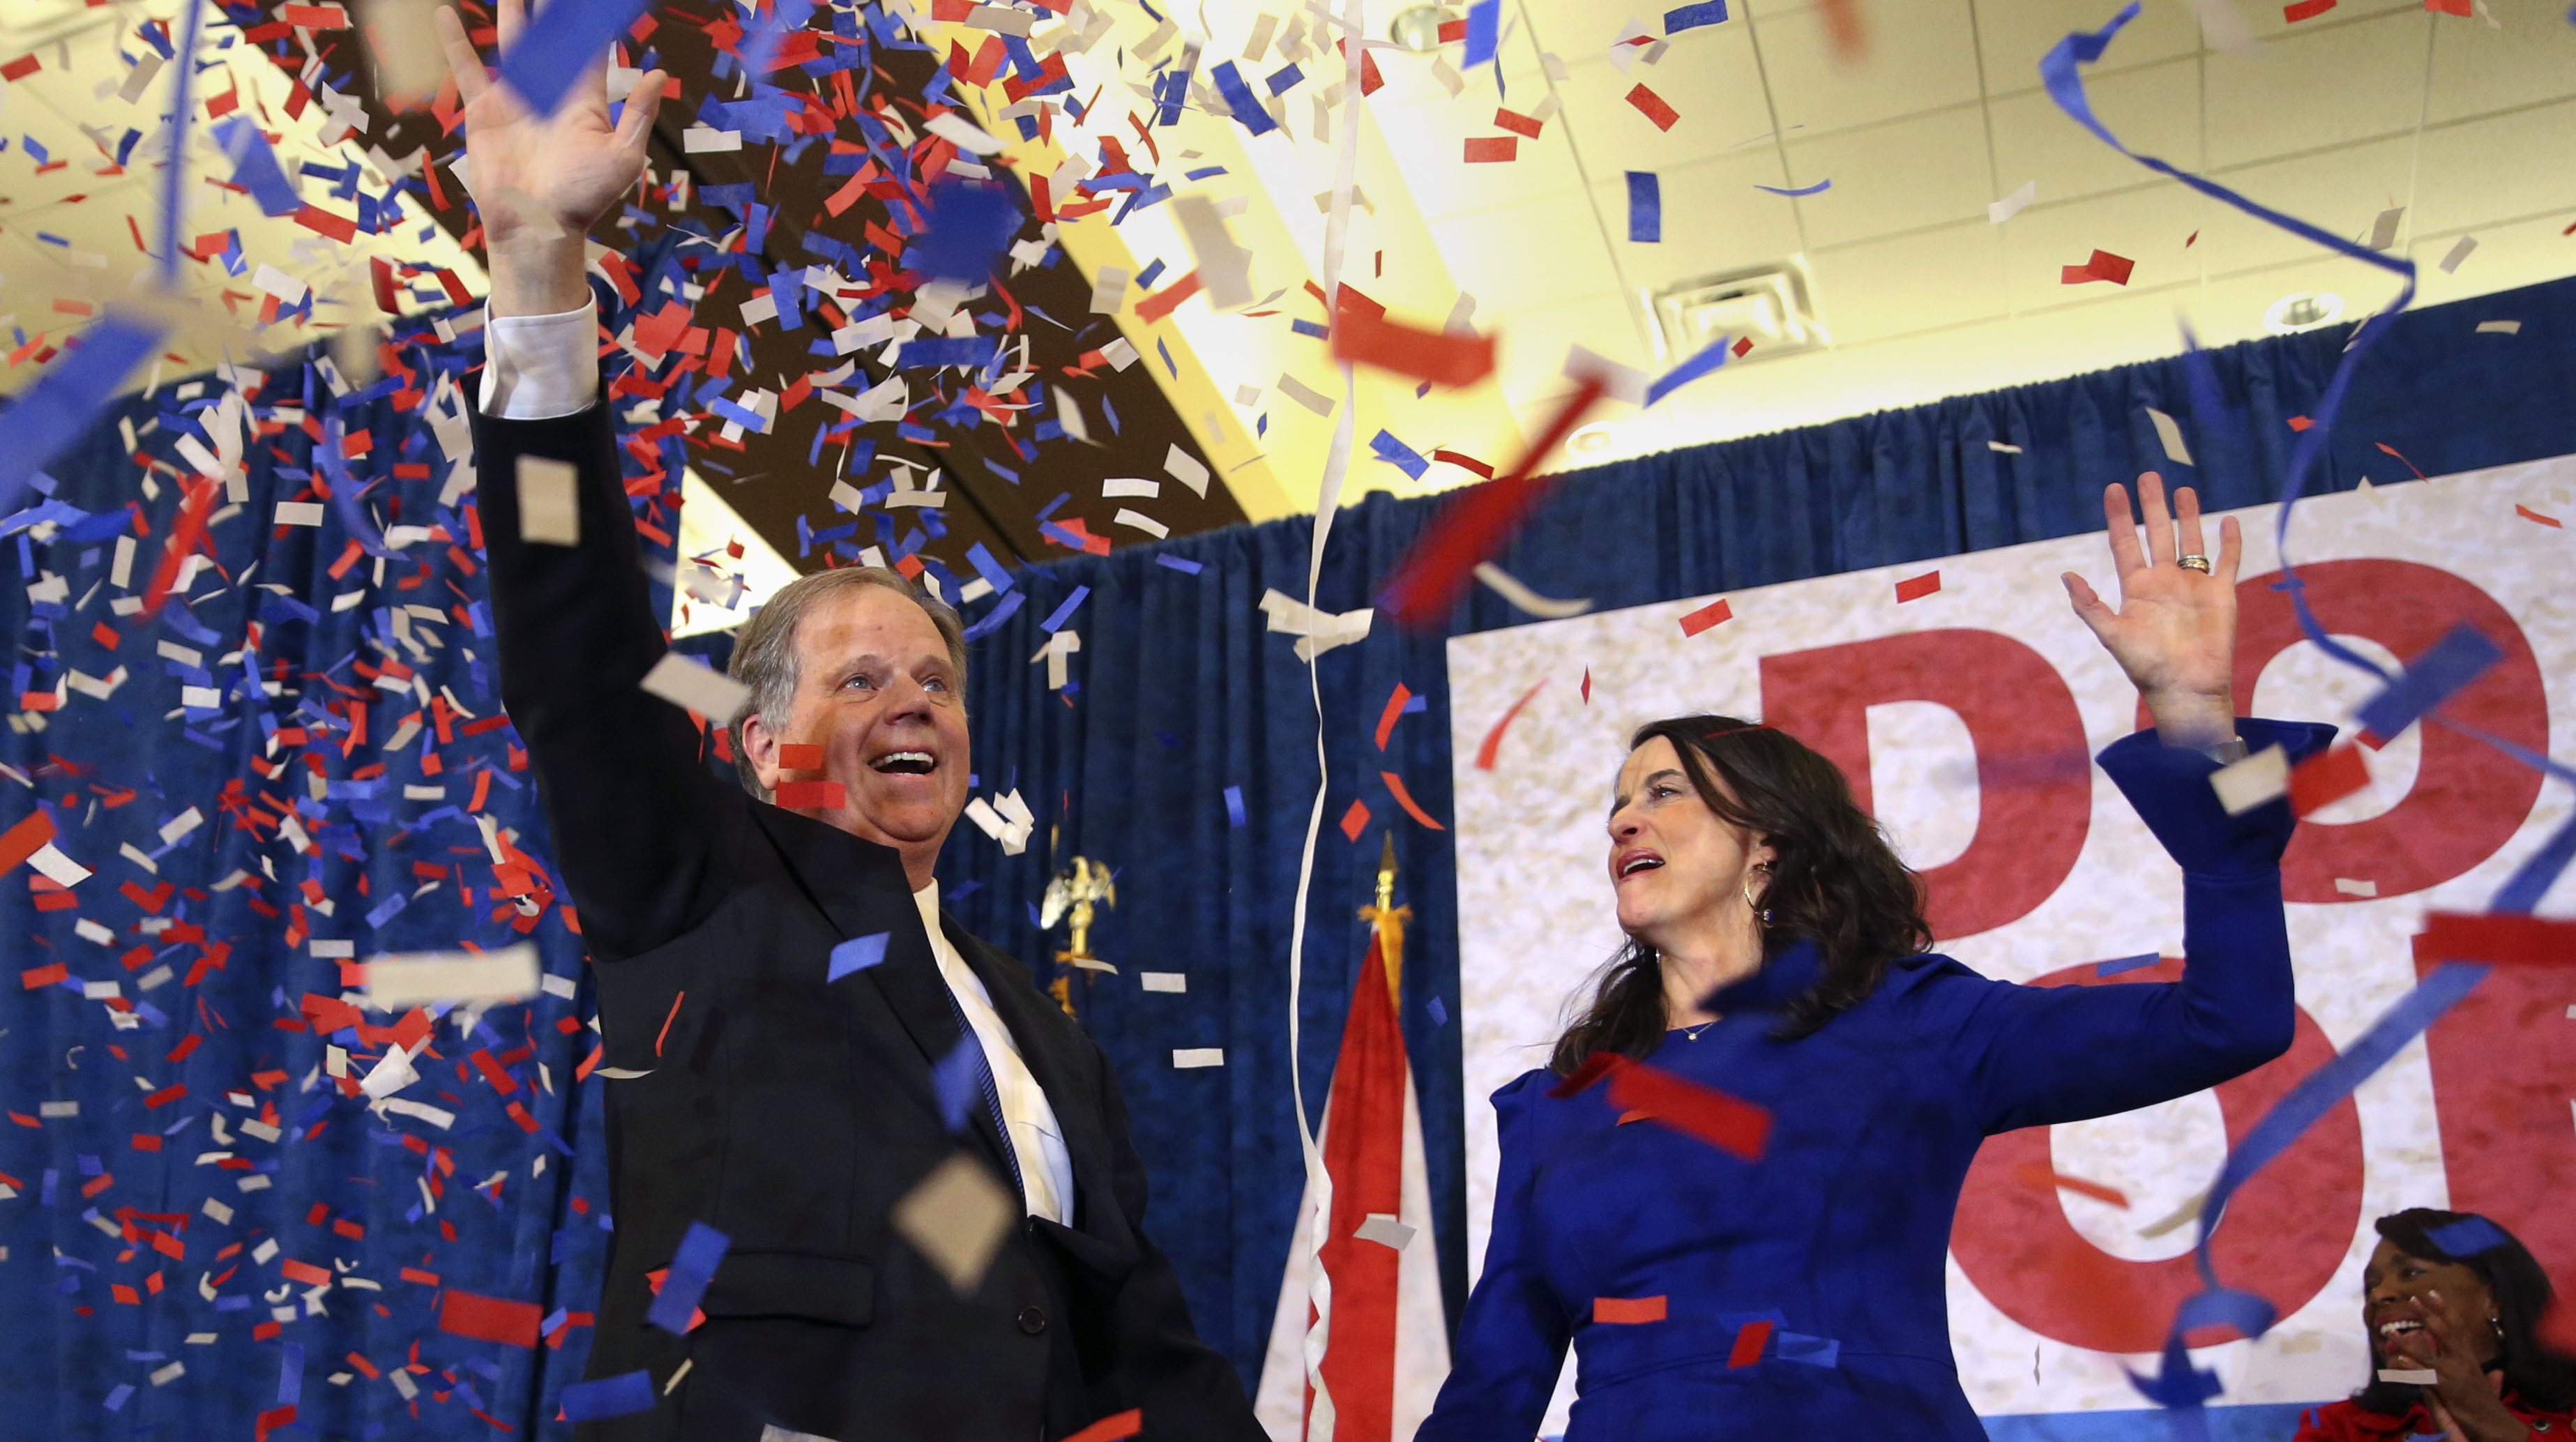 Democratic candidate for Senate Doug Jones and his wife, Louise, wave to supporters before he gave his victory speech in Birmingham, Ala., on Tuesday.